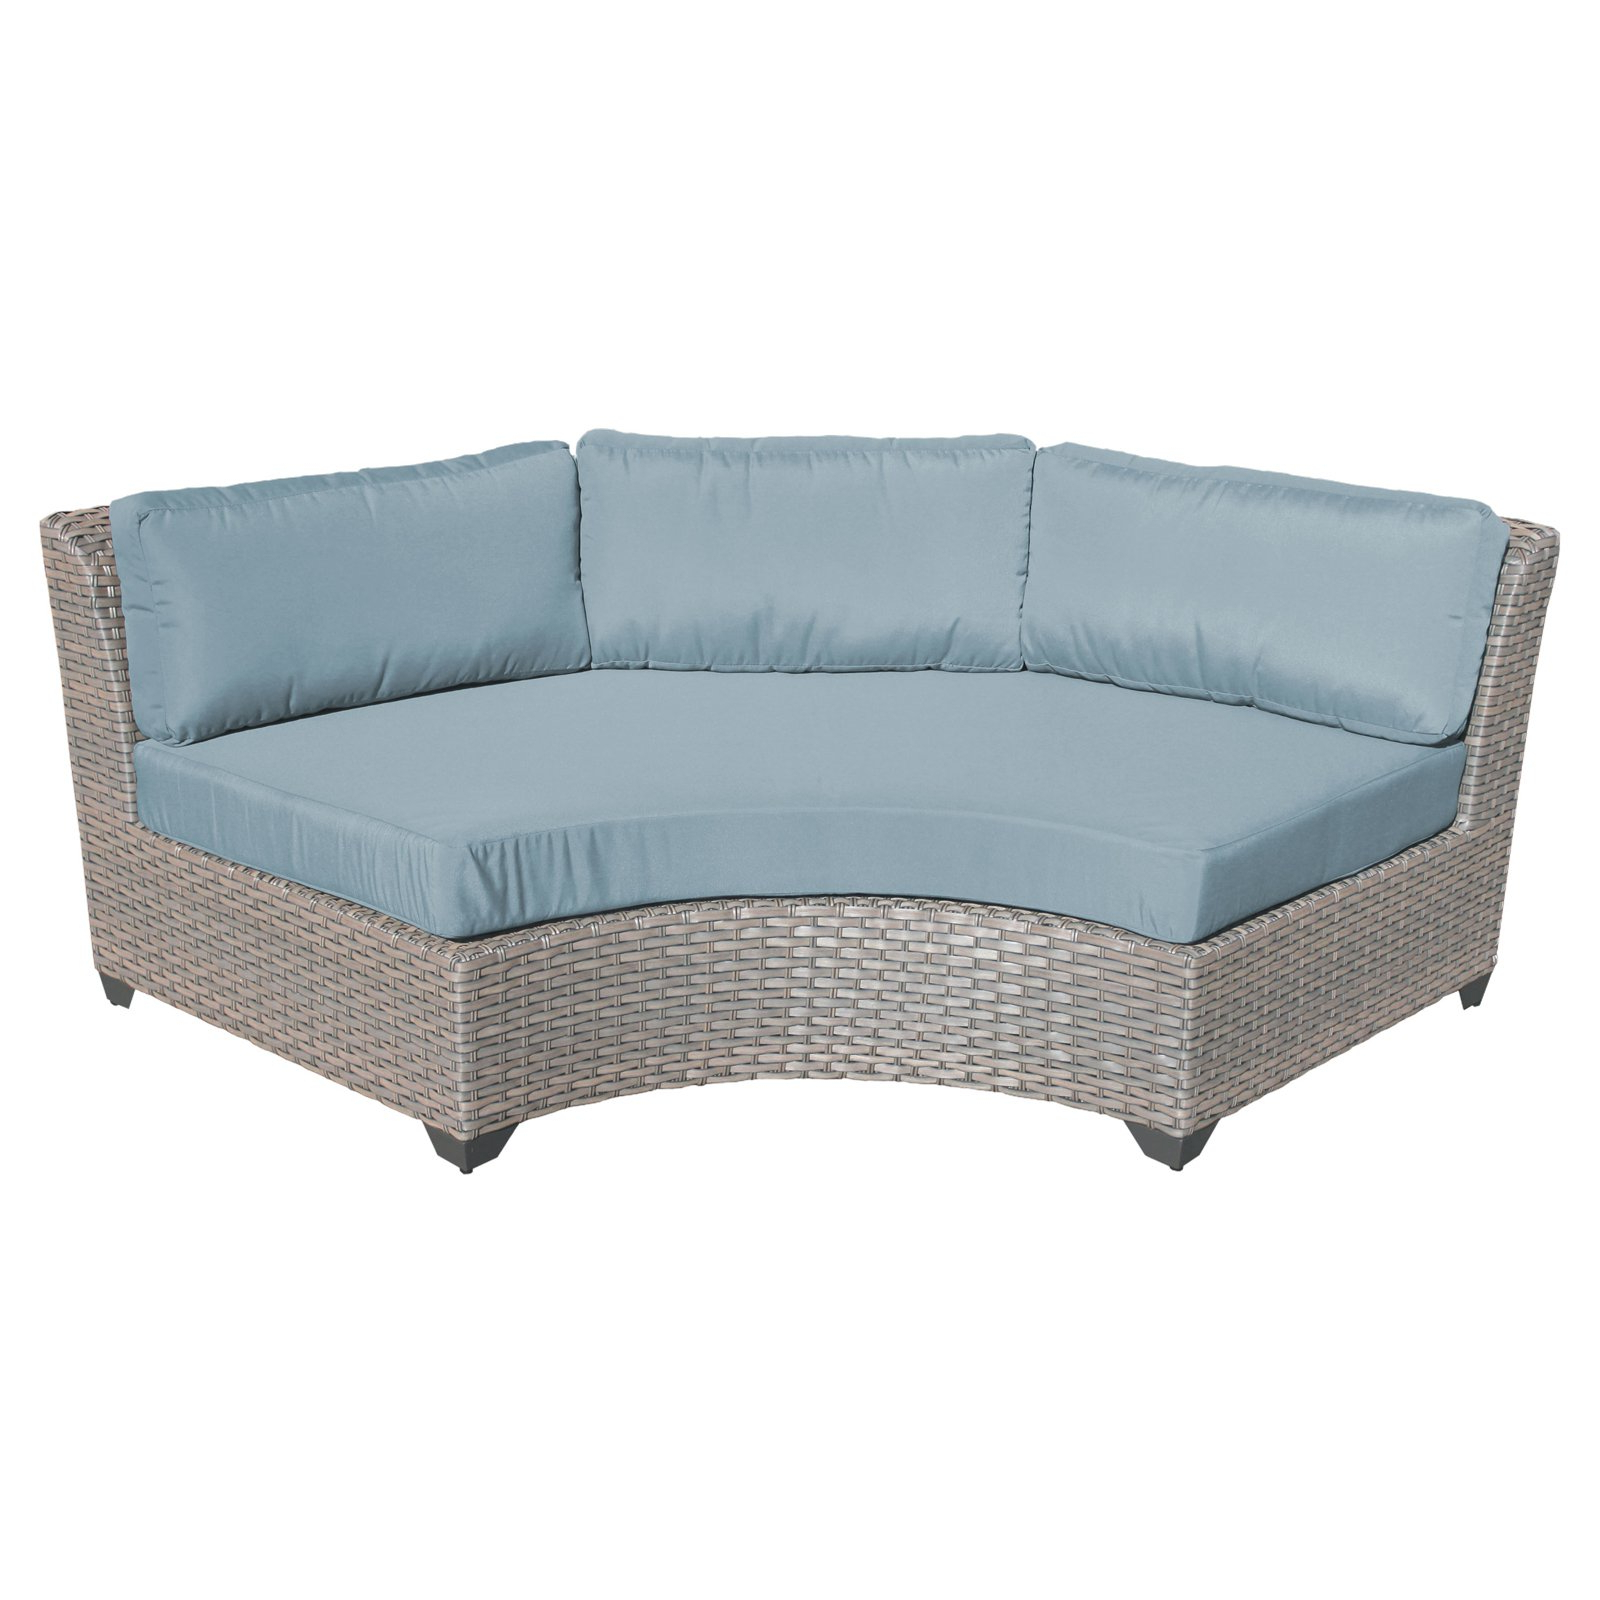 Camak Patio Loveseats With Cushions Regarding Most Popular Tk Classics Florence Curved Outdoor Middle Chair With 2 Sets (View 11 of 20)